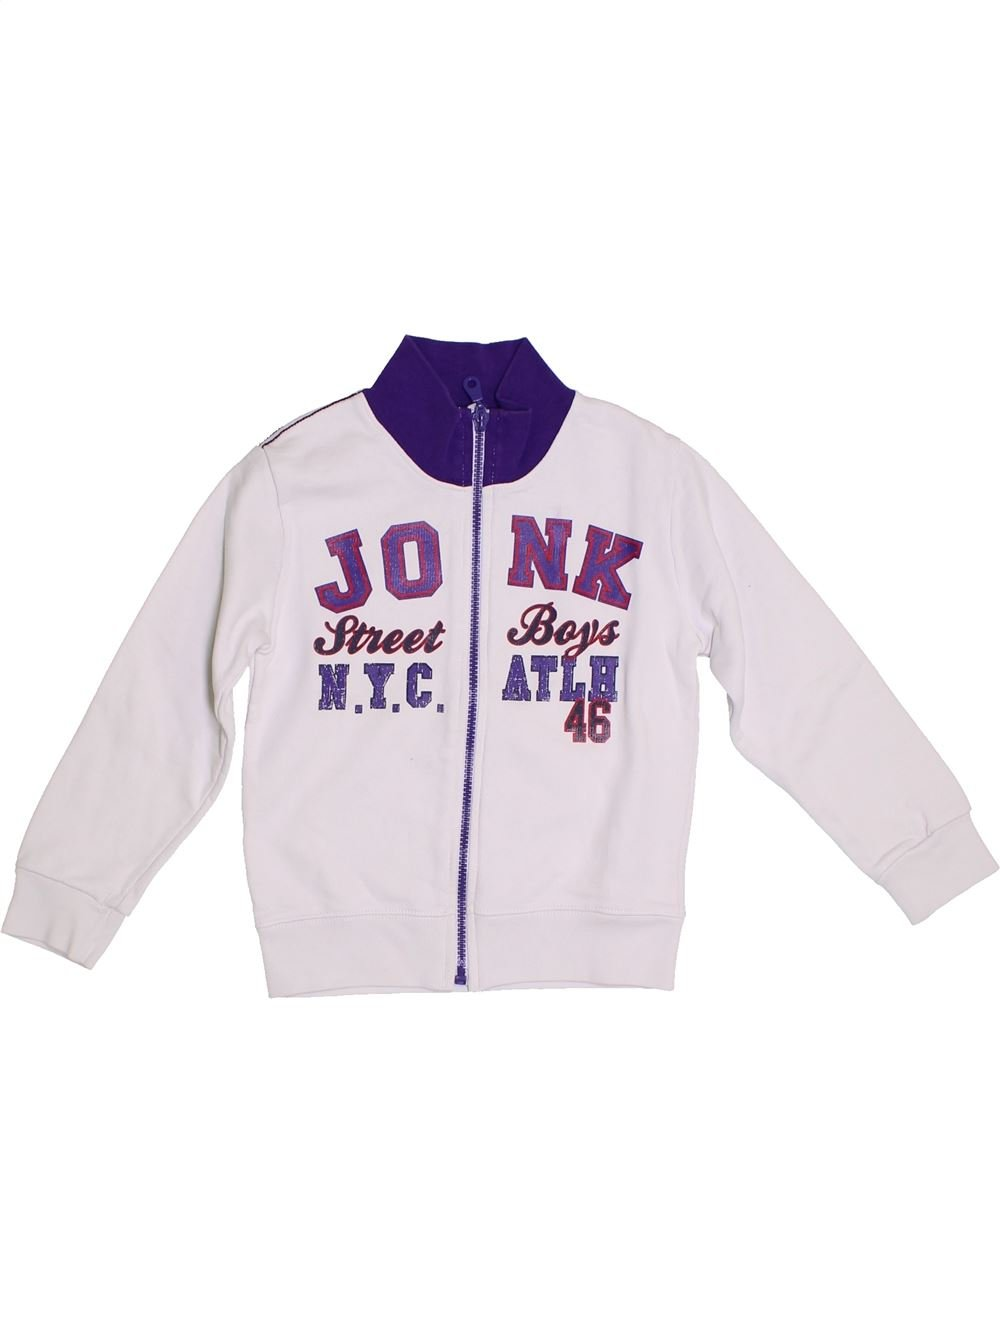 new style f9fea 34360 Sweat Fille JONK 46 5 ans pas cher, 5.00 € - #1283085